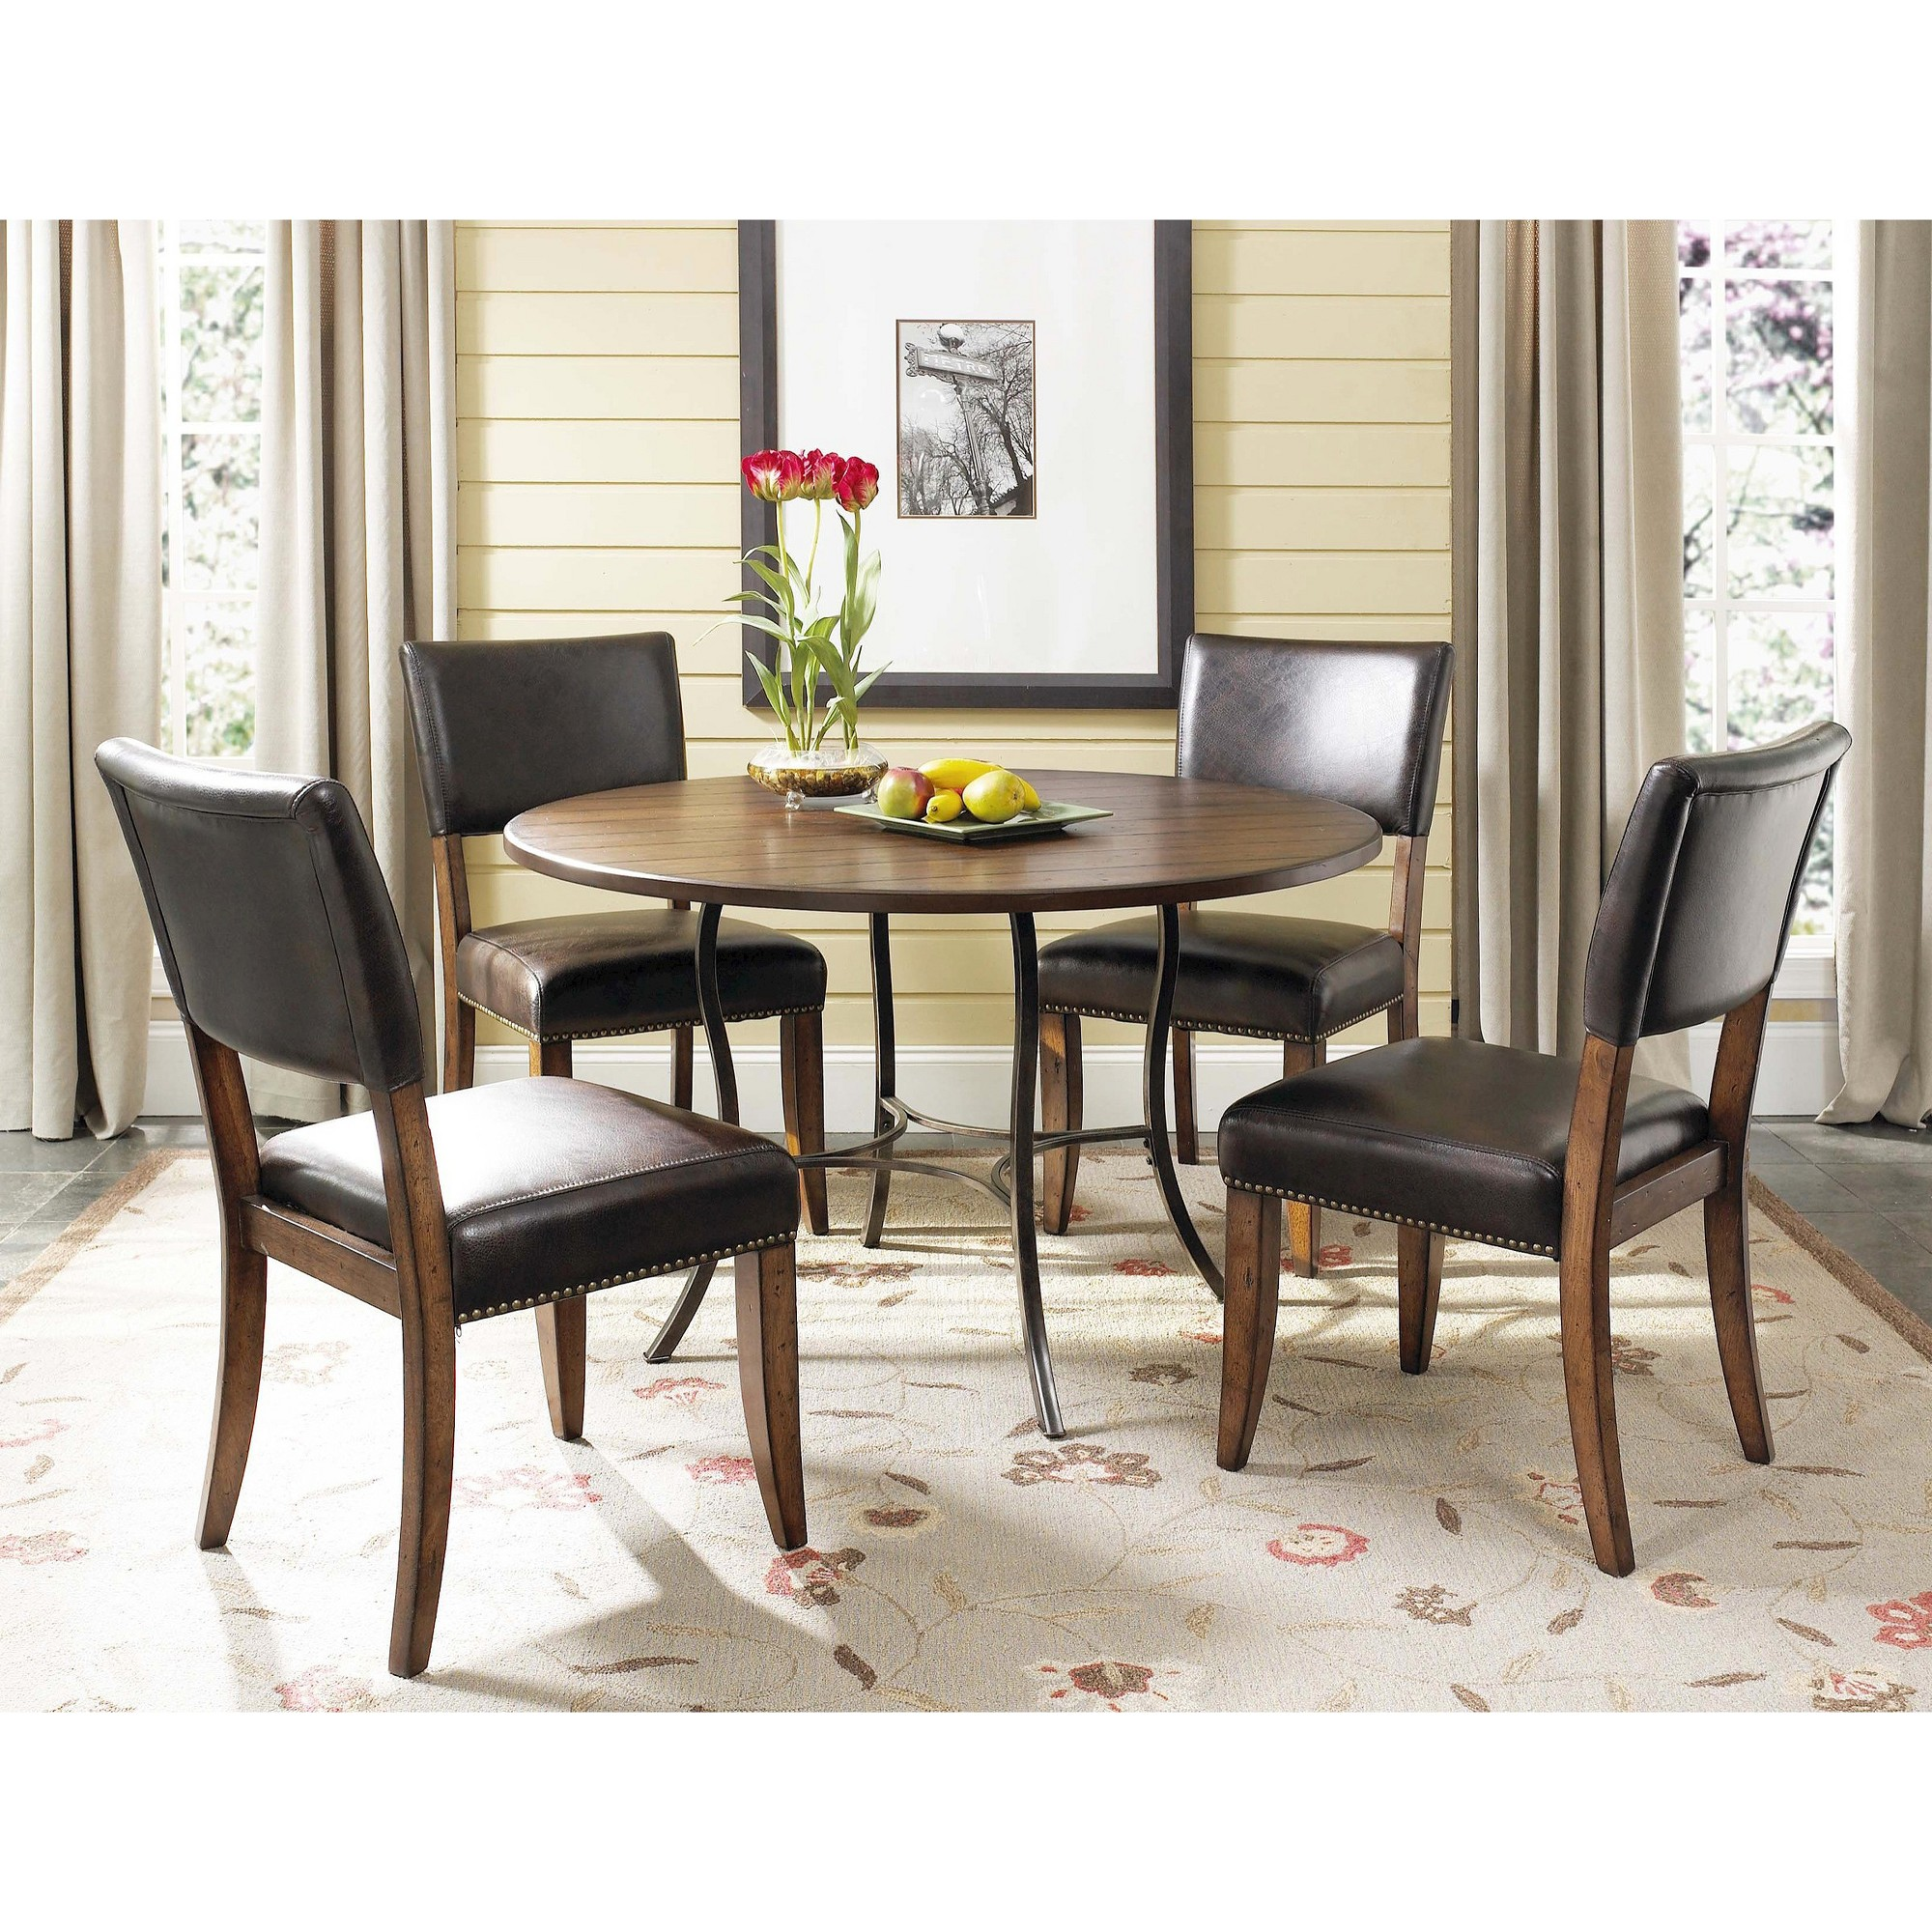 5 Piece Cameron Round Dining Table With Padded Back Chairs